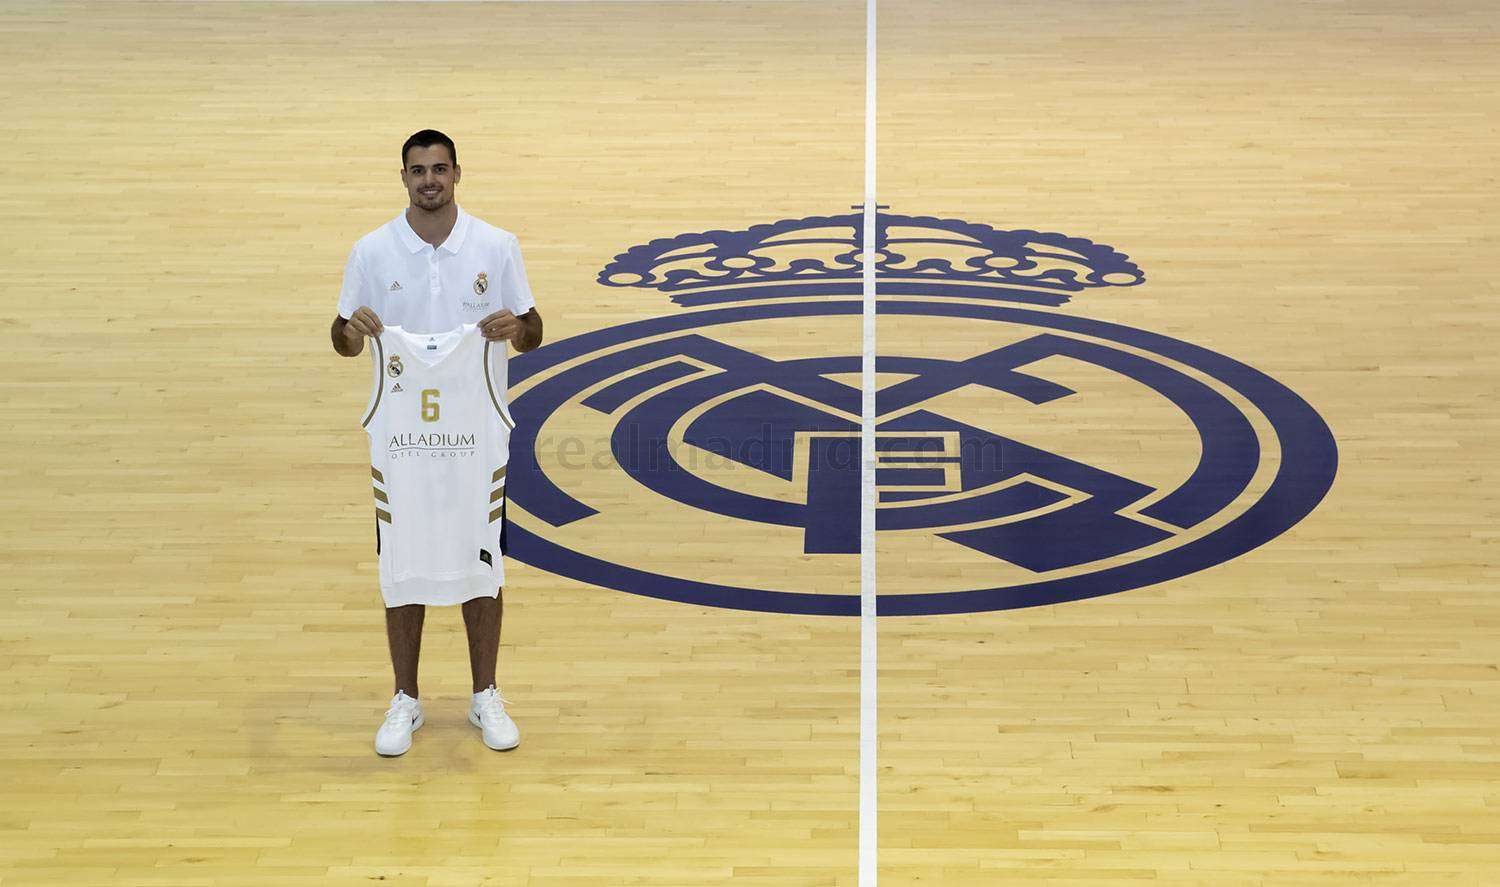 Real Madrid - Alberto Abalde se incorpora al Real Madrid de baloncesto - 21-07-2020